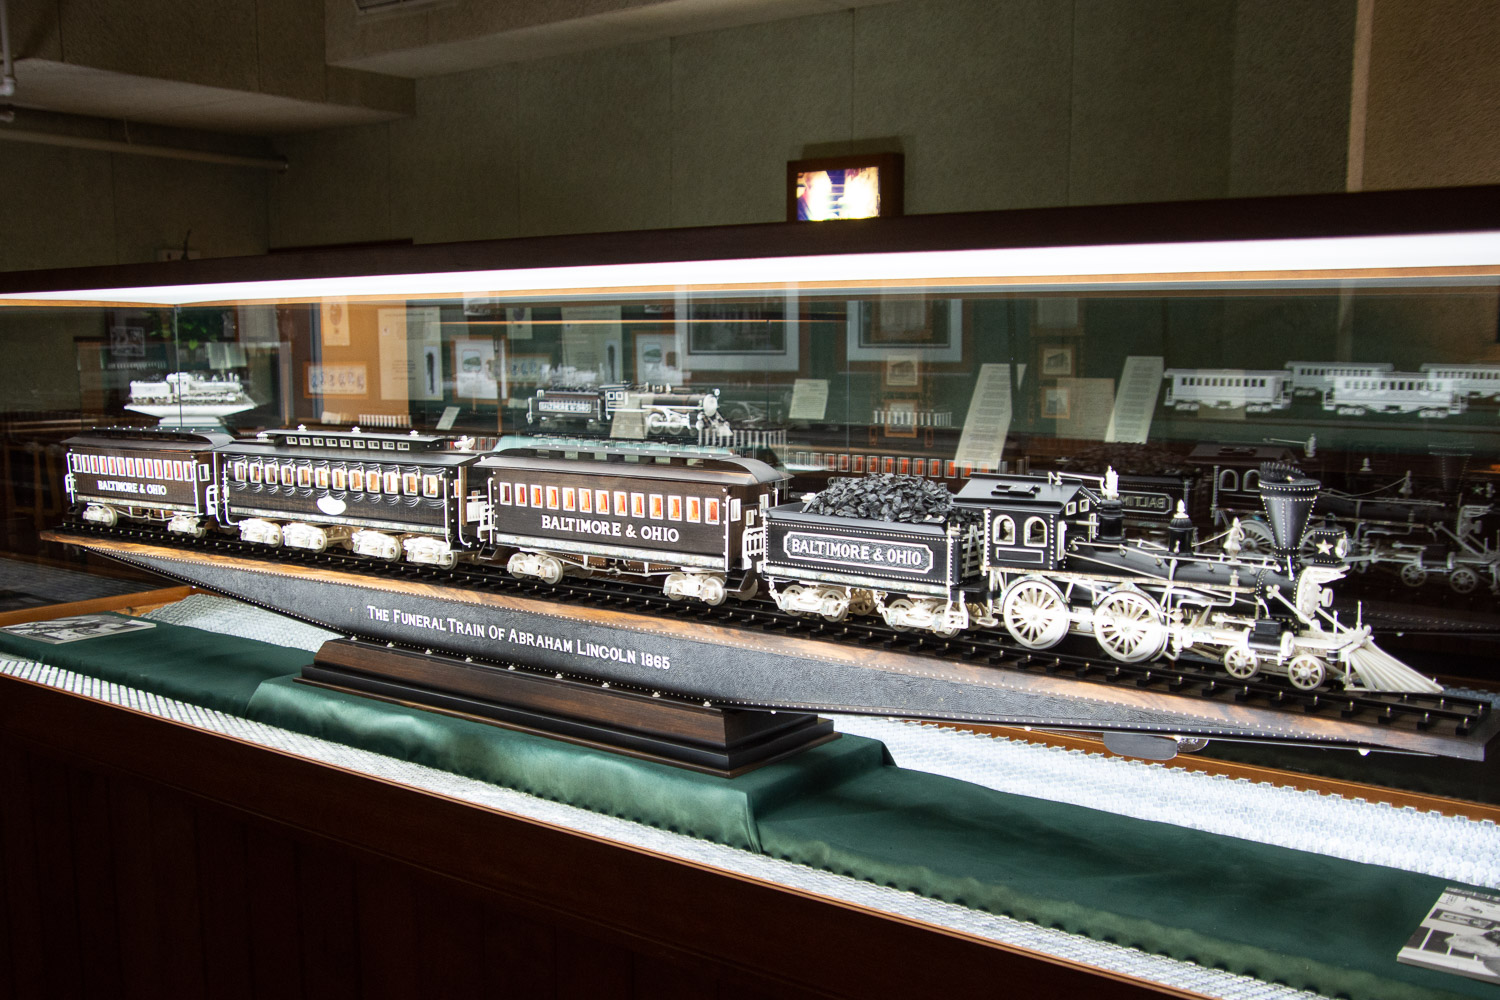 Carving of Lincoln funeral train